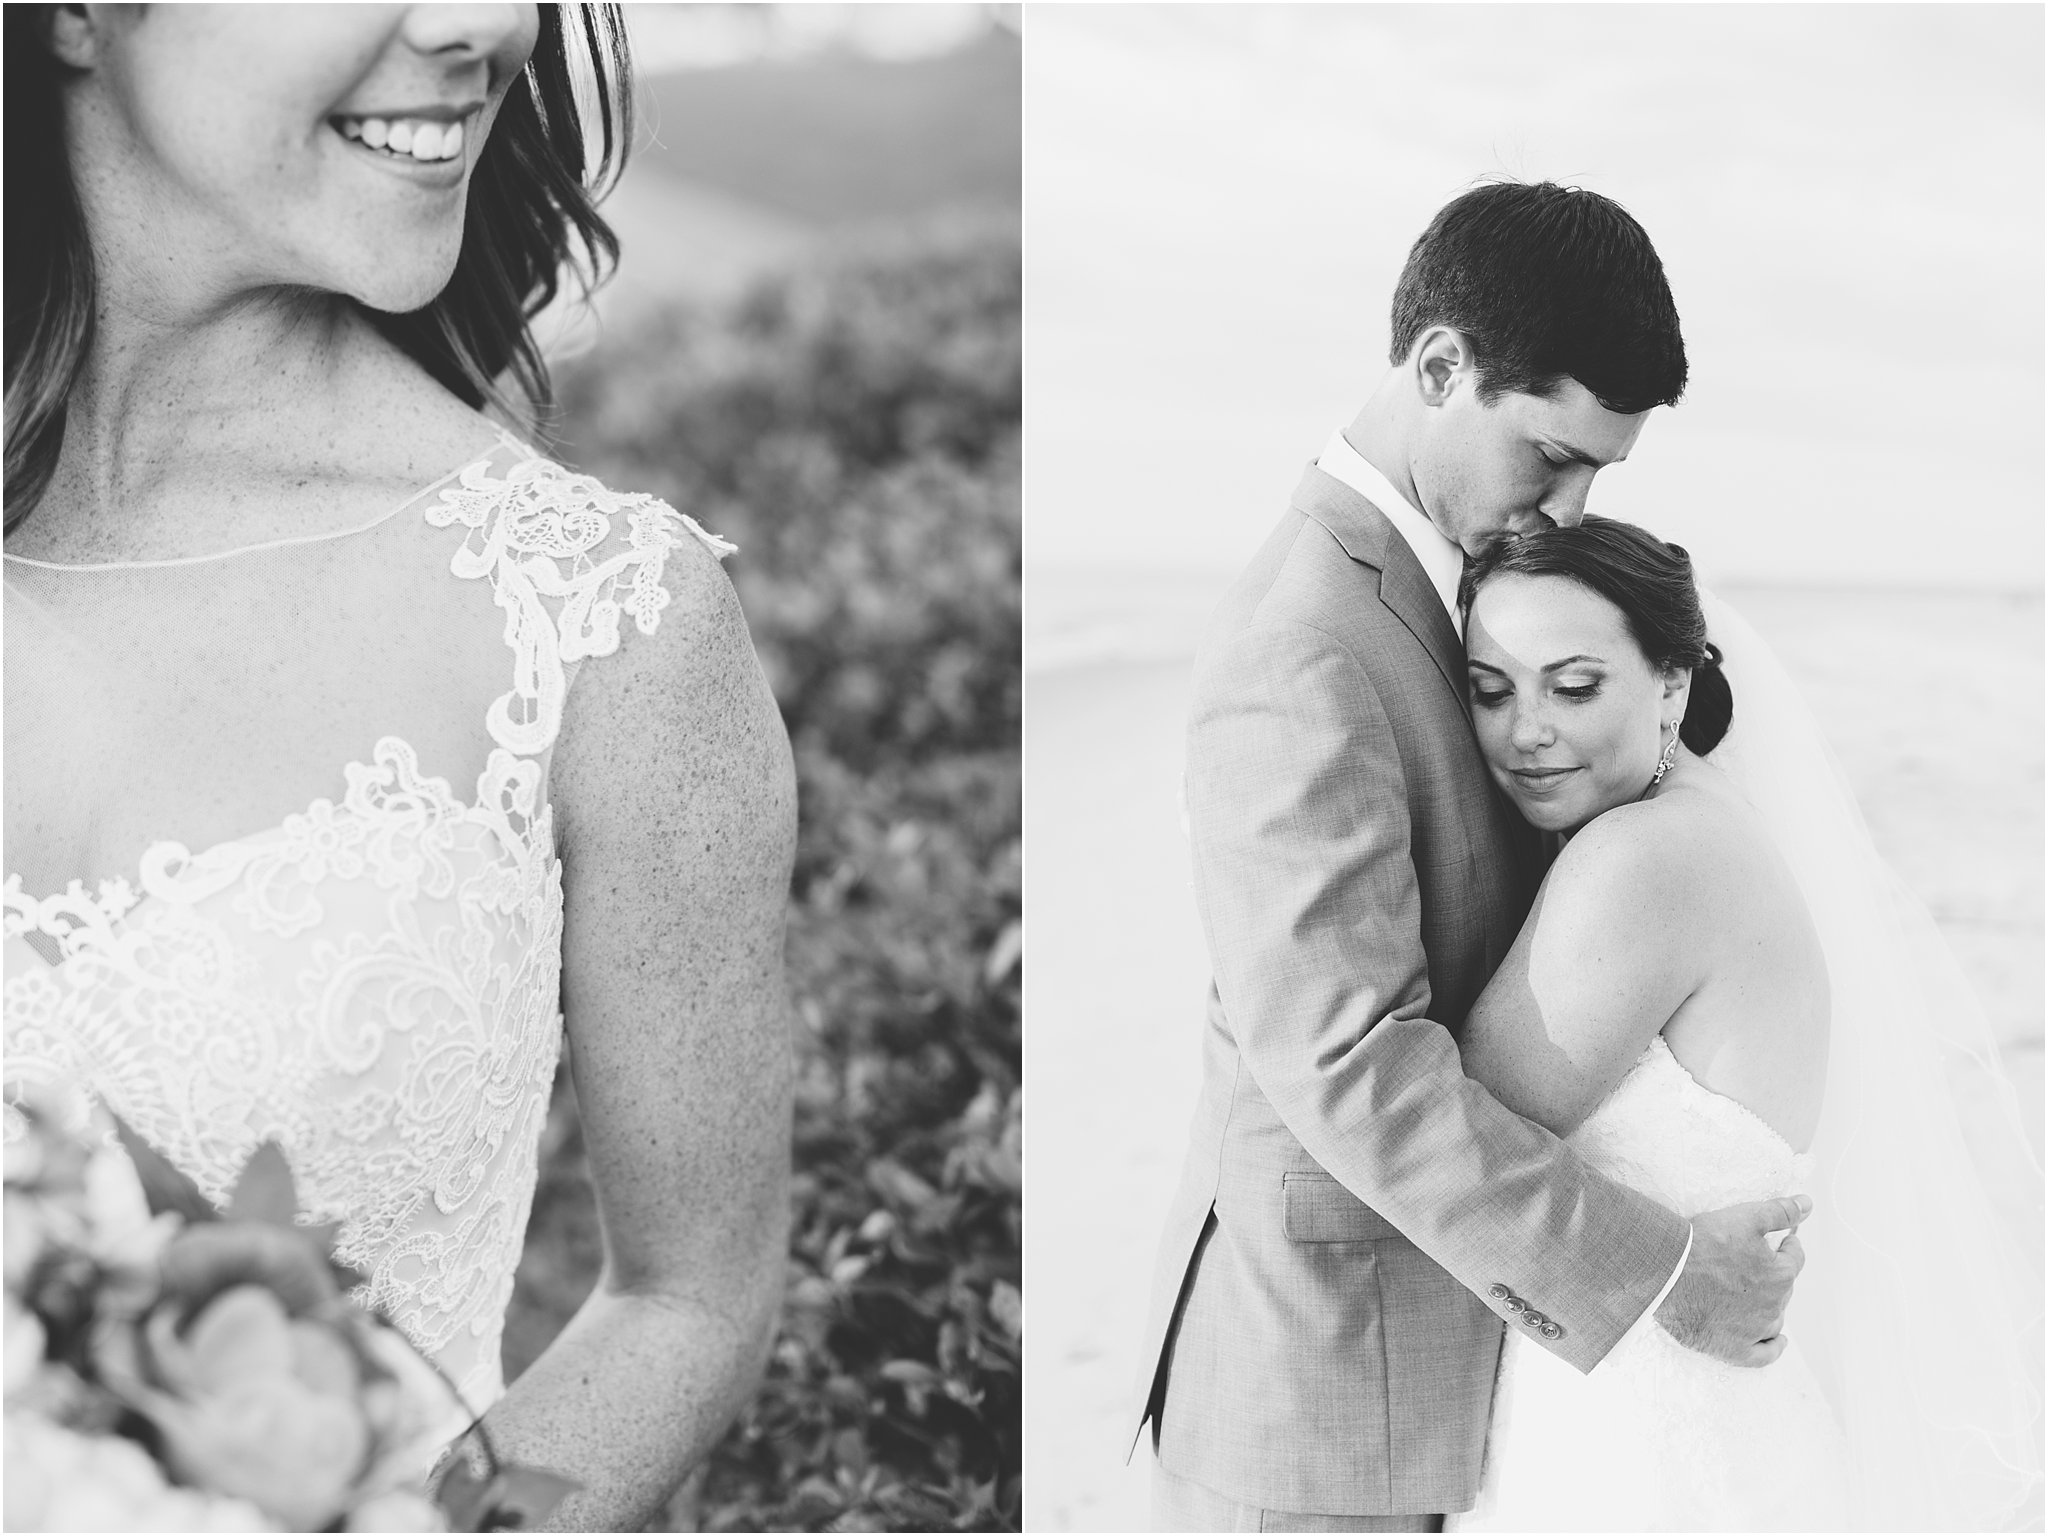 jessica_ryan_photography_wedding_photography_virginiabeach_virginia_candid_authentic_bride_tips_wedding_planning_tips_bridal_tips_1987